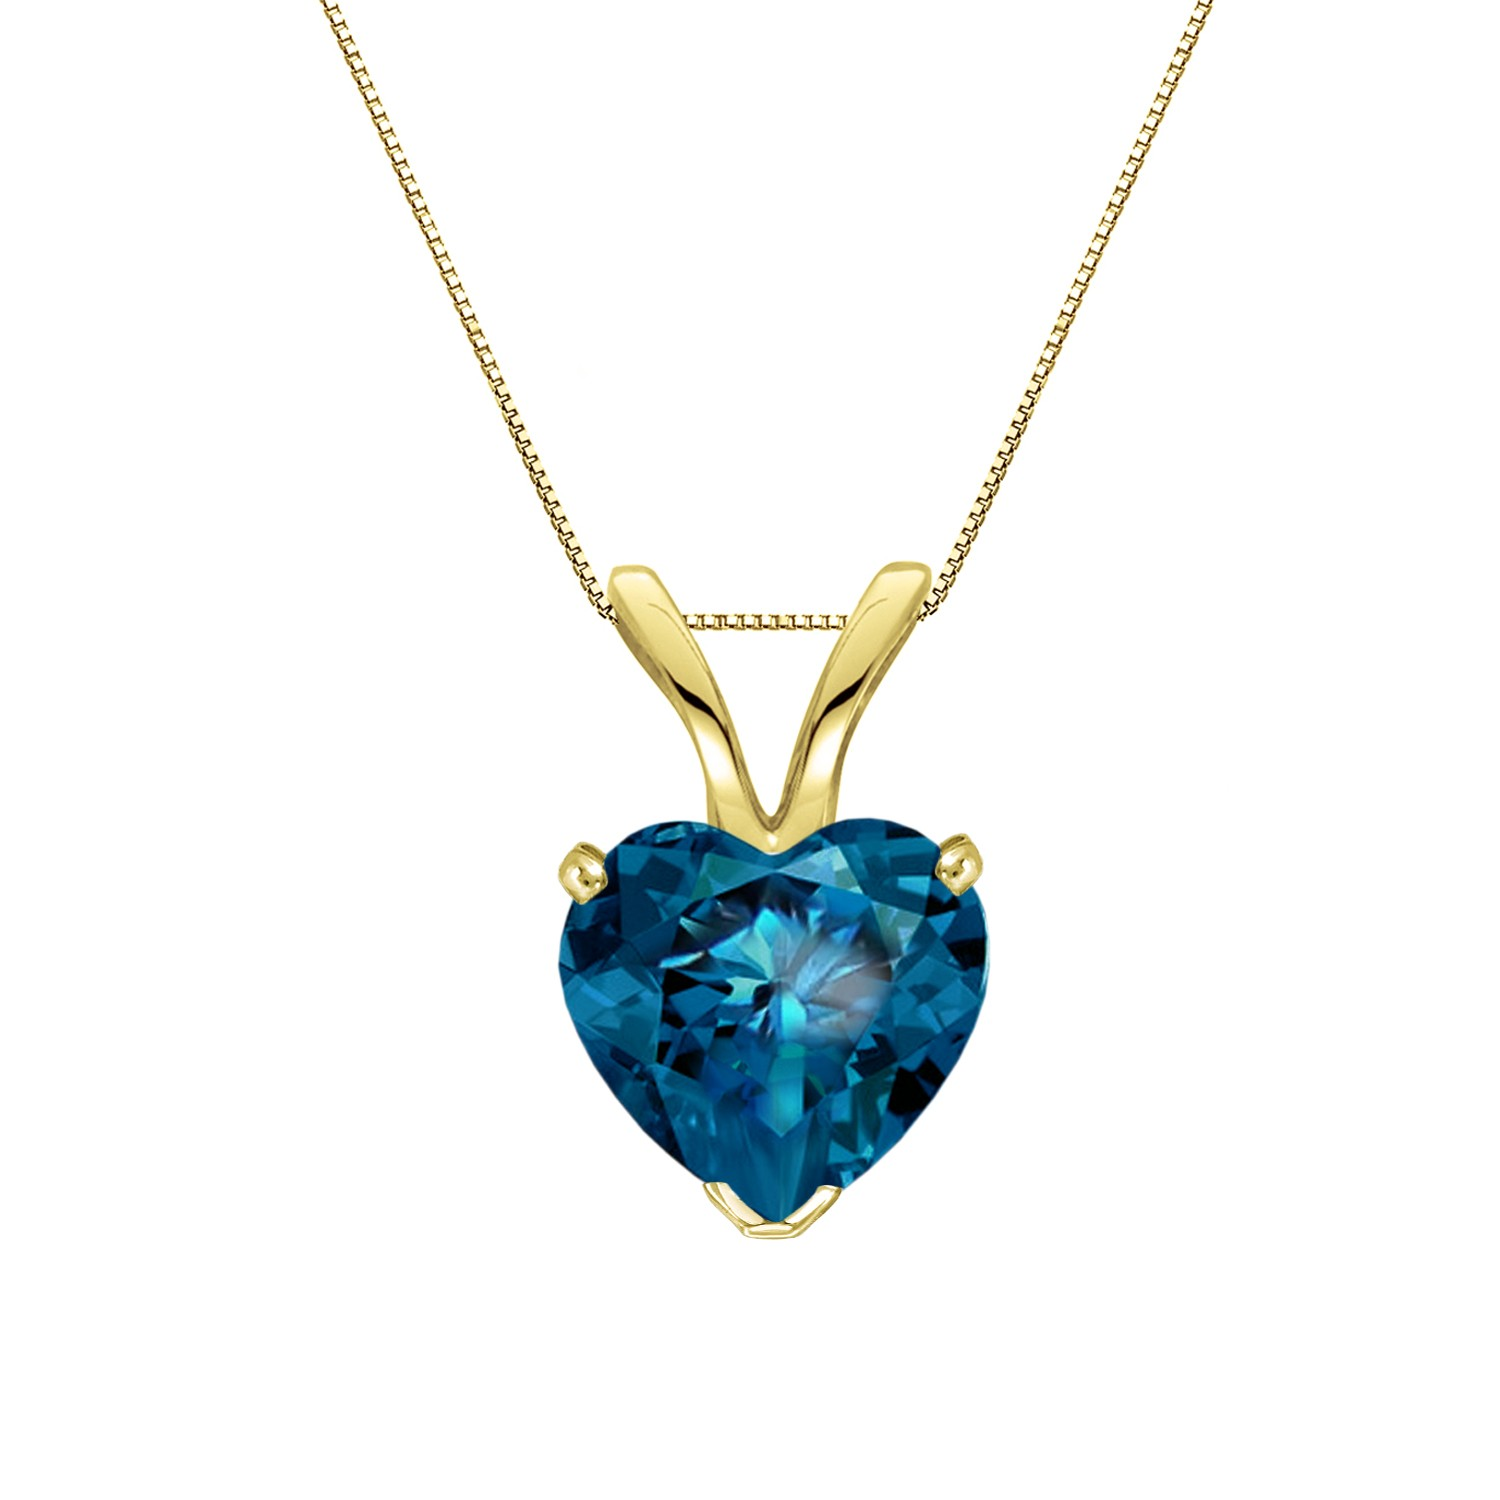 Certified 14k Yellow Gold Heart Shape Blue Diamond Solitaire Pendant 1.00 ct. tw. (Blue, SI1-SI2)